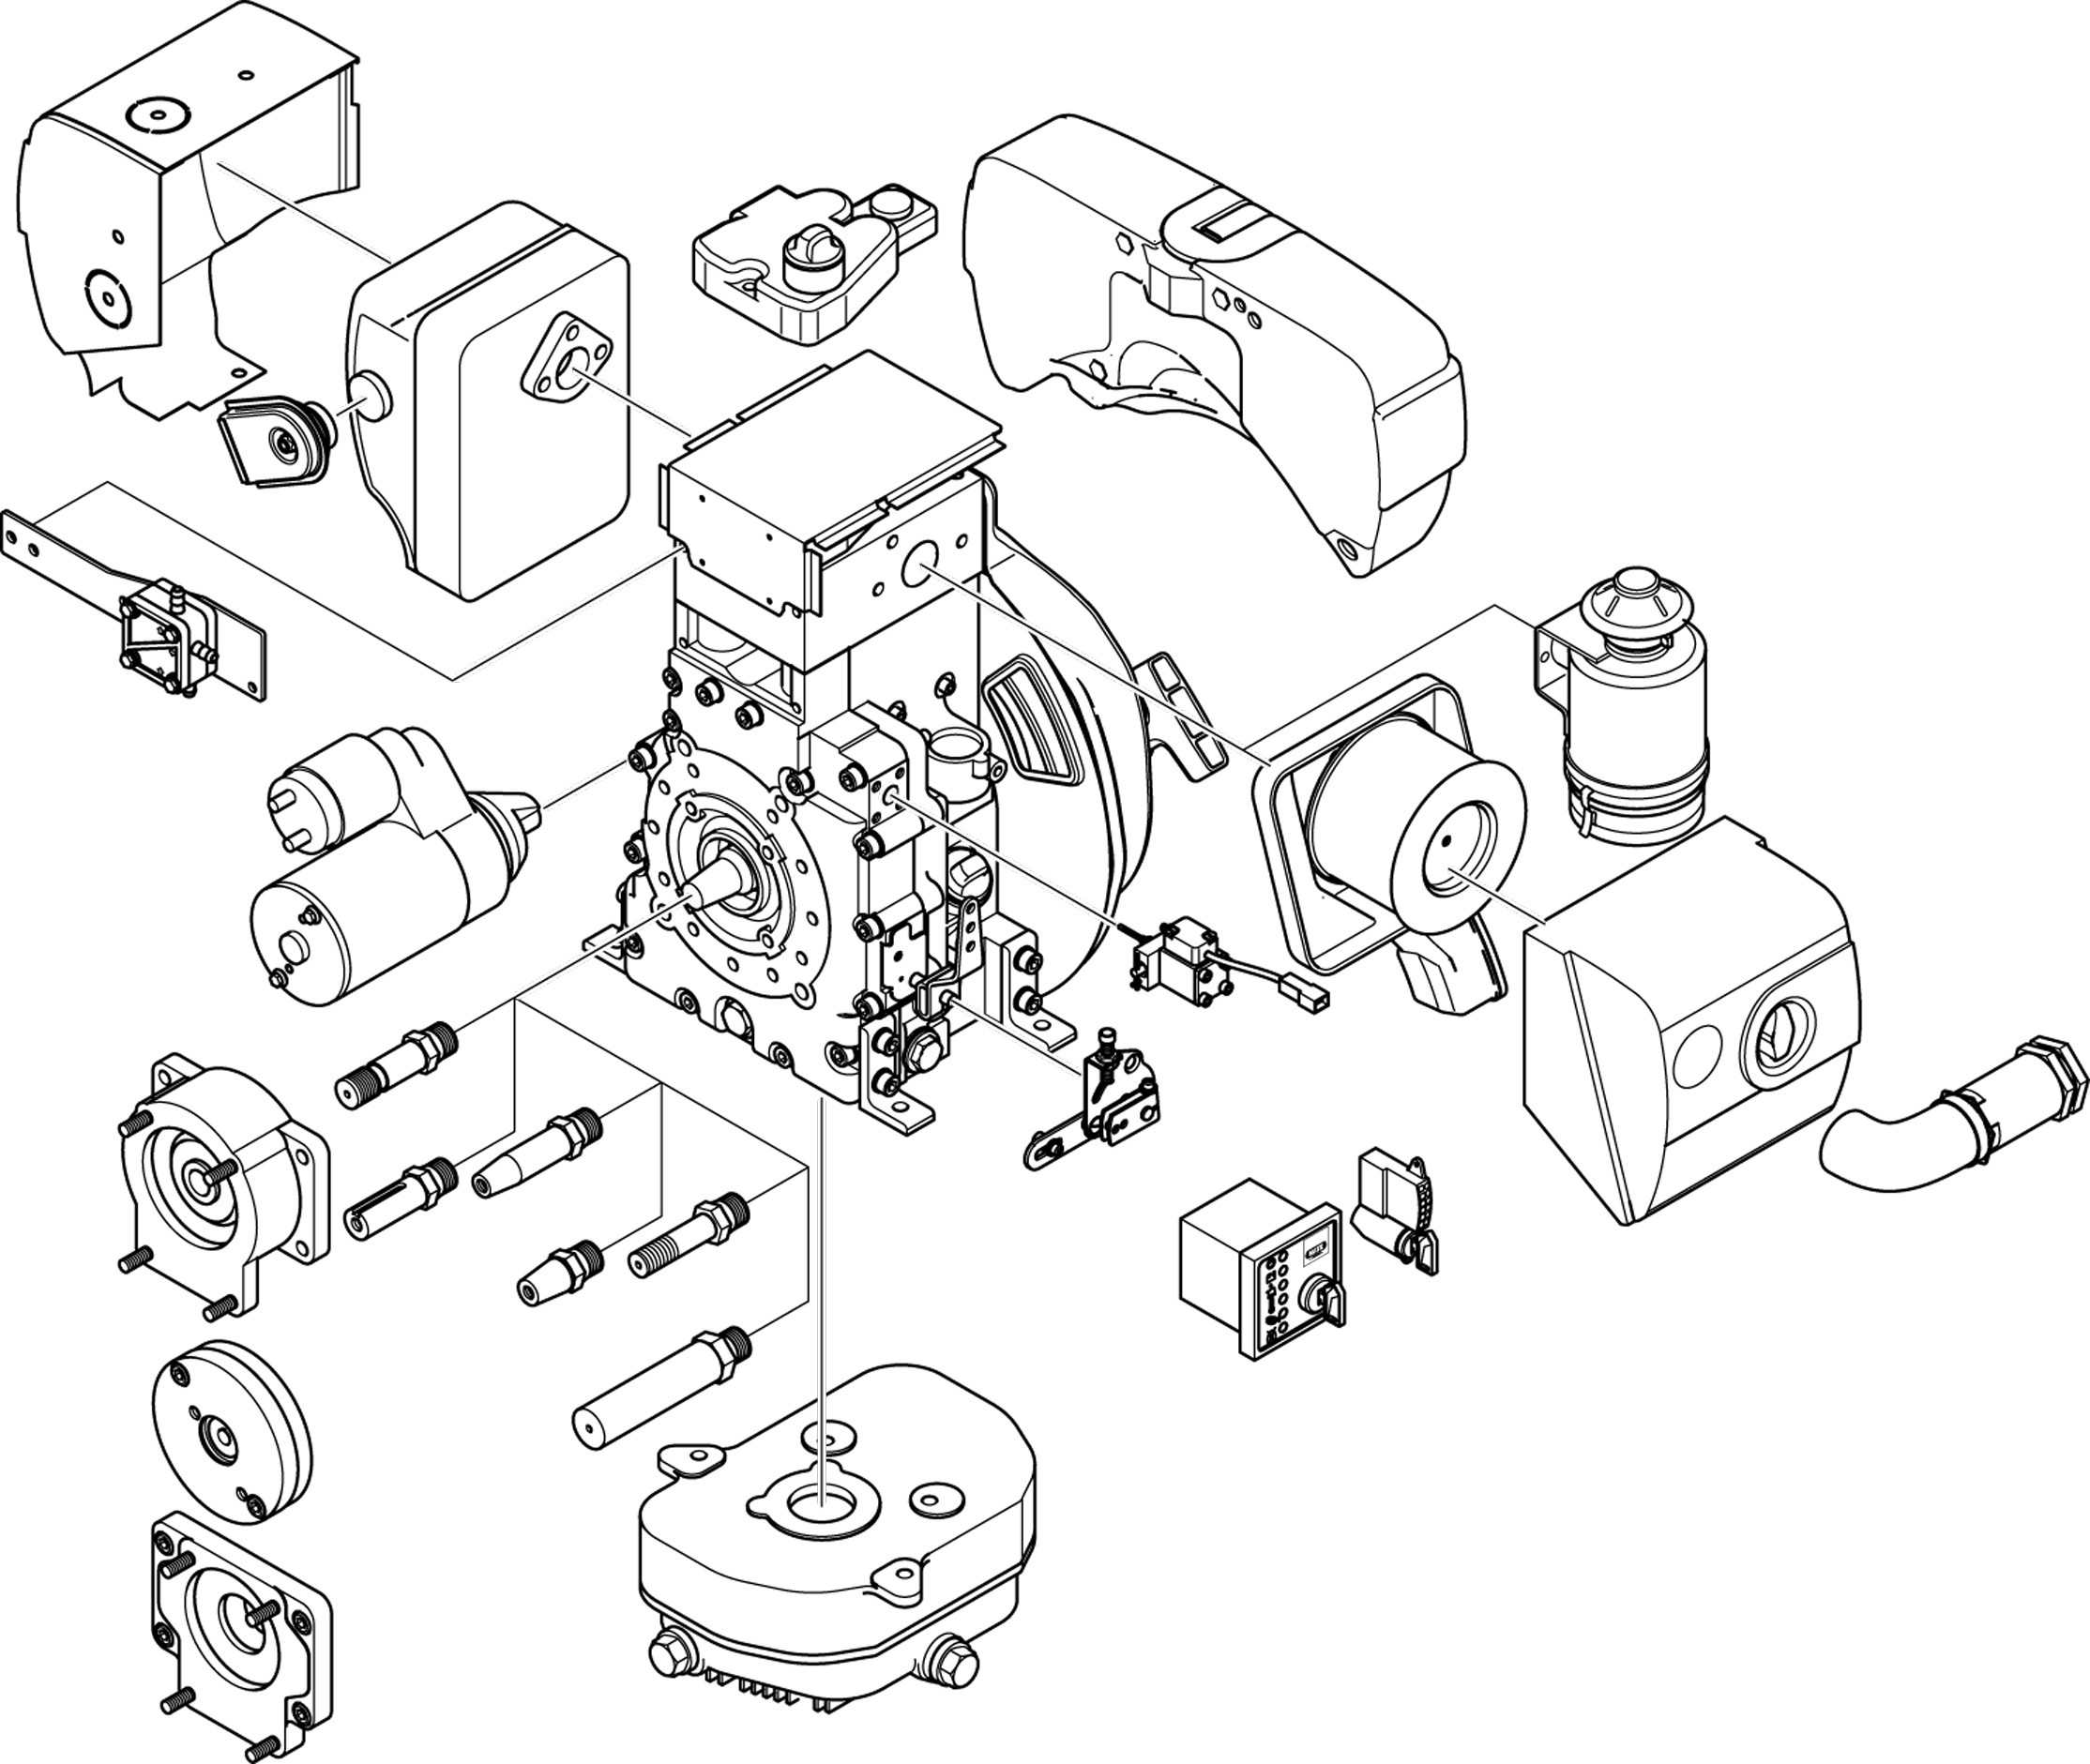 Car Engine Parts and Functions Diagram Hatz Engine Diagram Another Blog About Wiring Diagram • Of Car Engine Parts and Functions Diagram